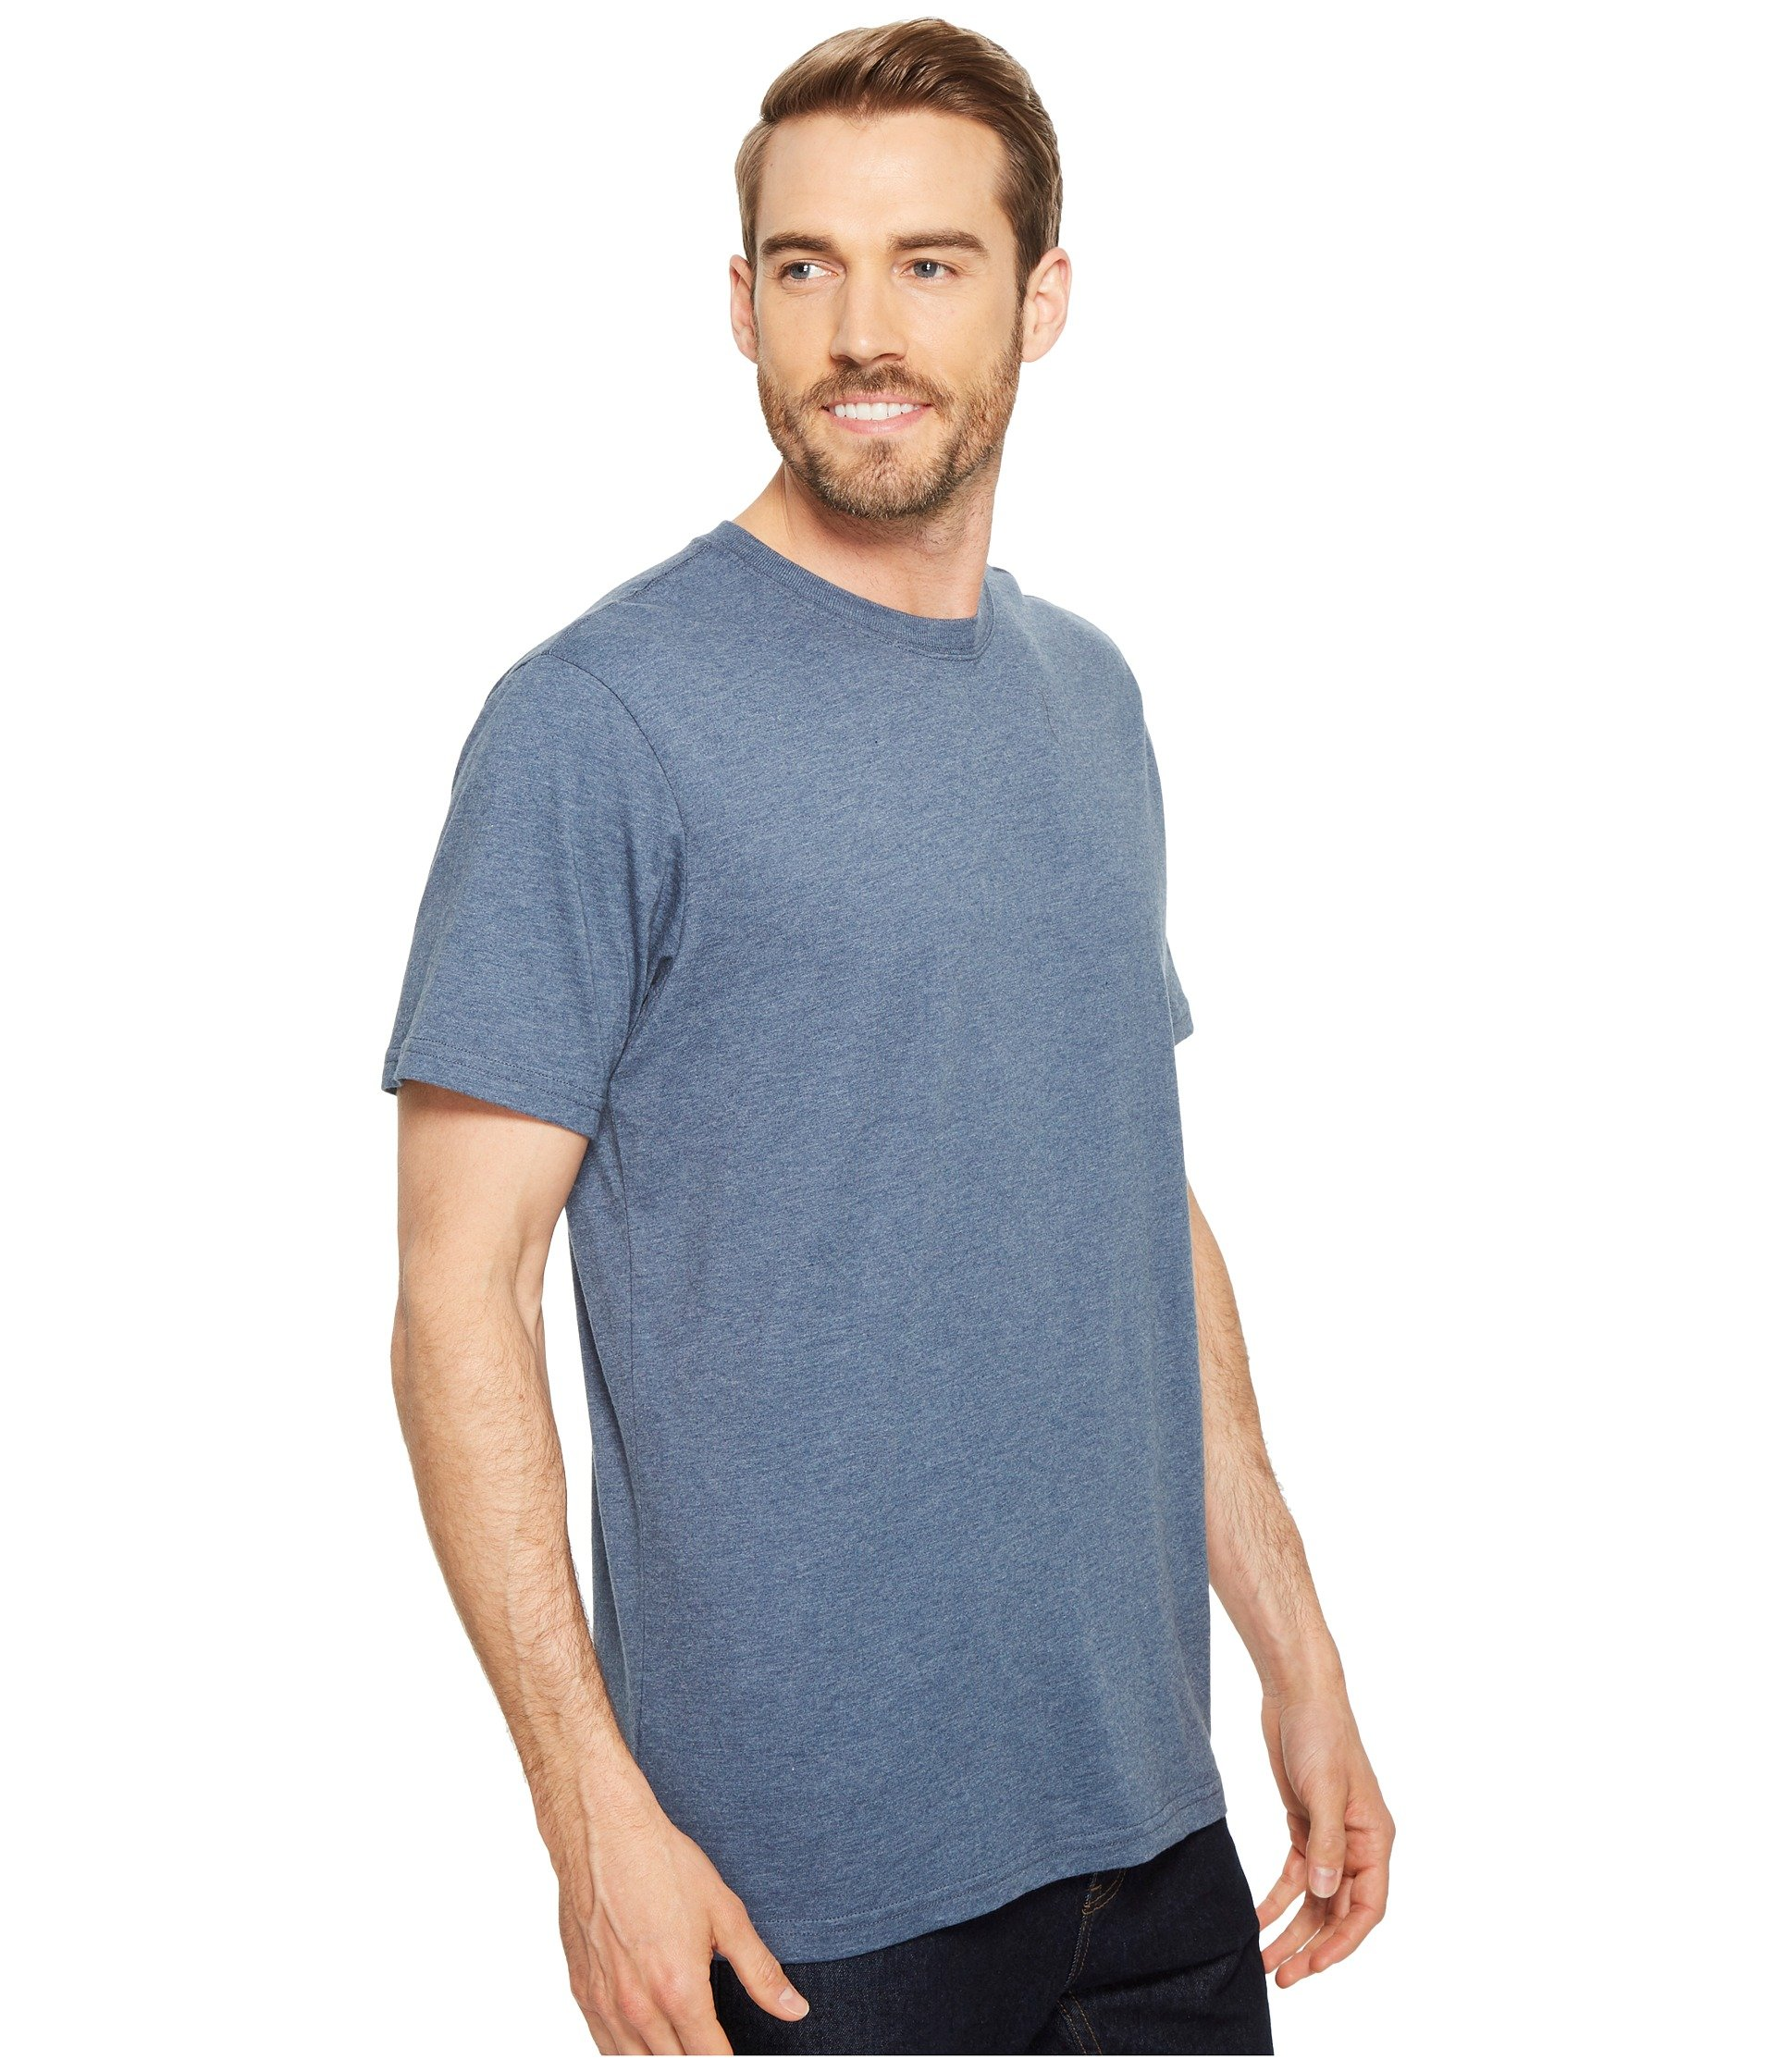 Denim Tee Crew Prana® Prana Heather qnxwP4OA6Z